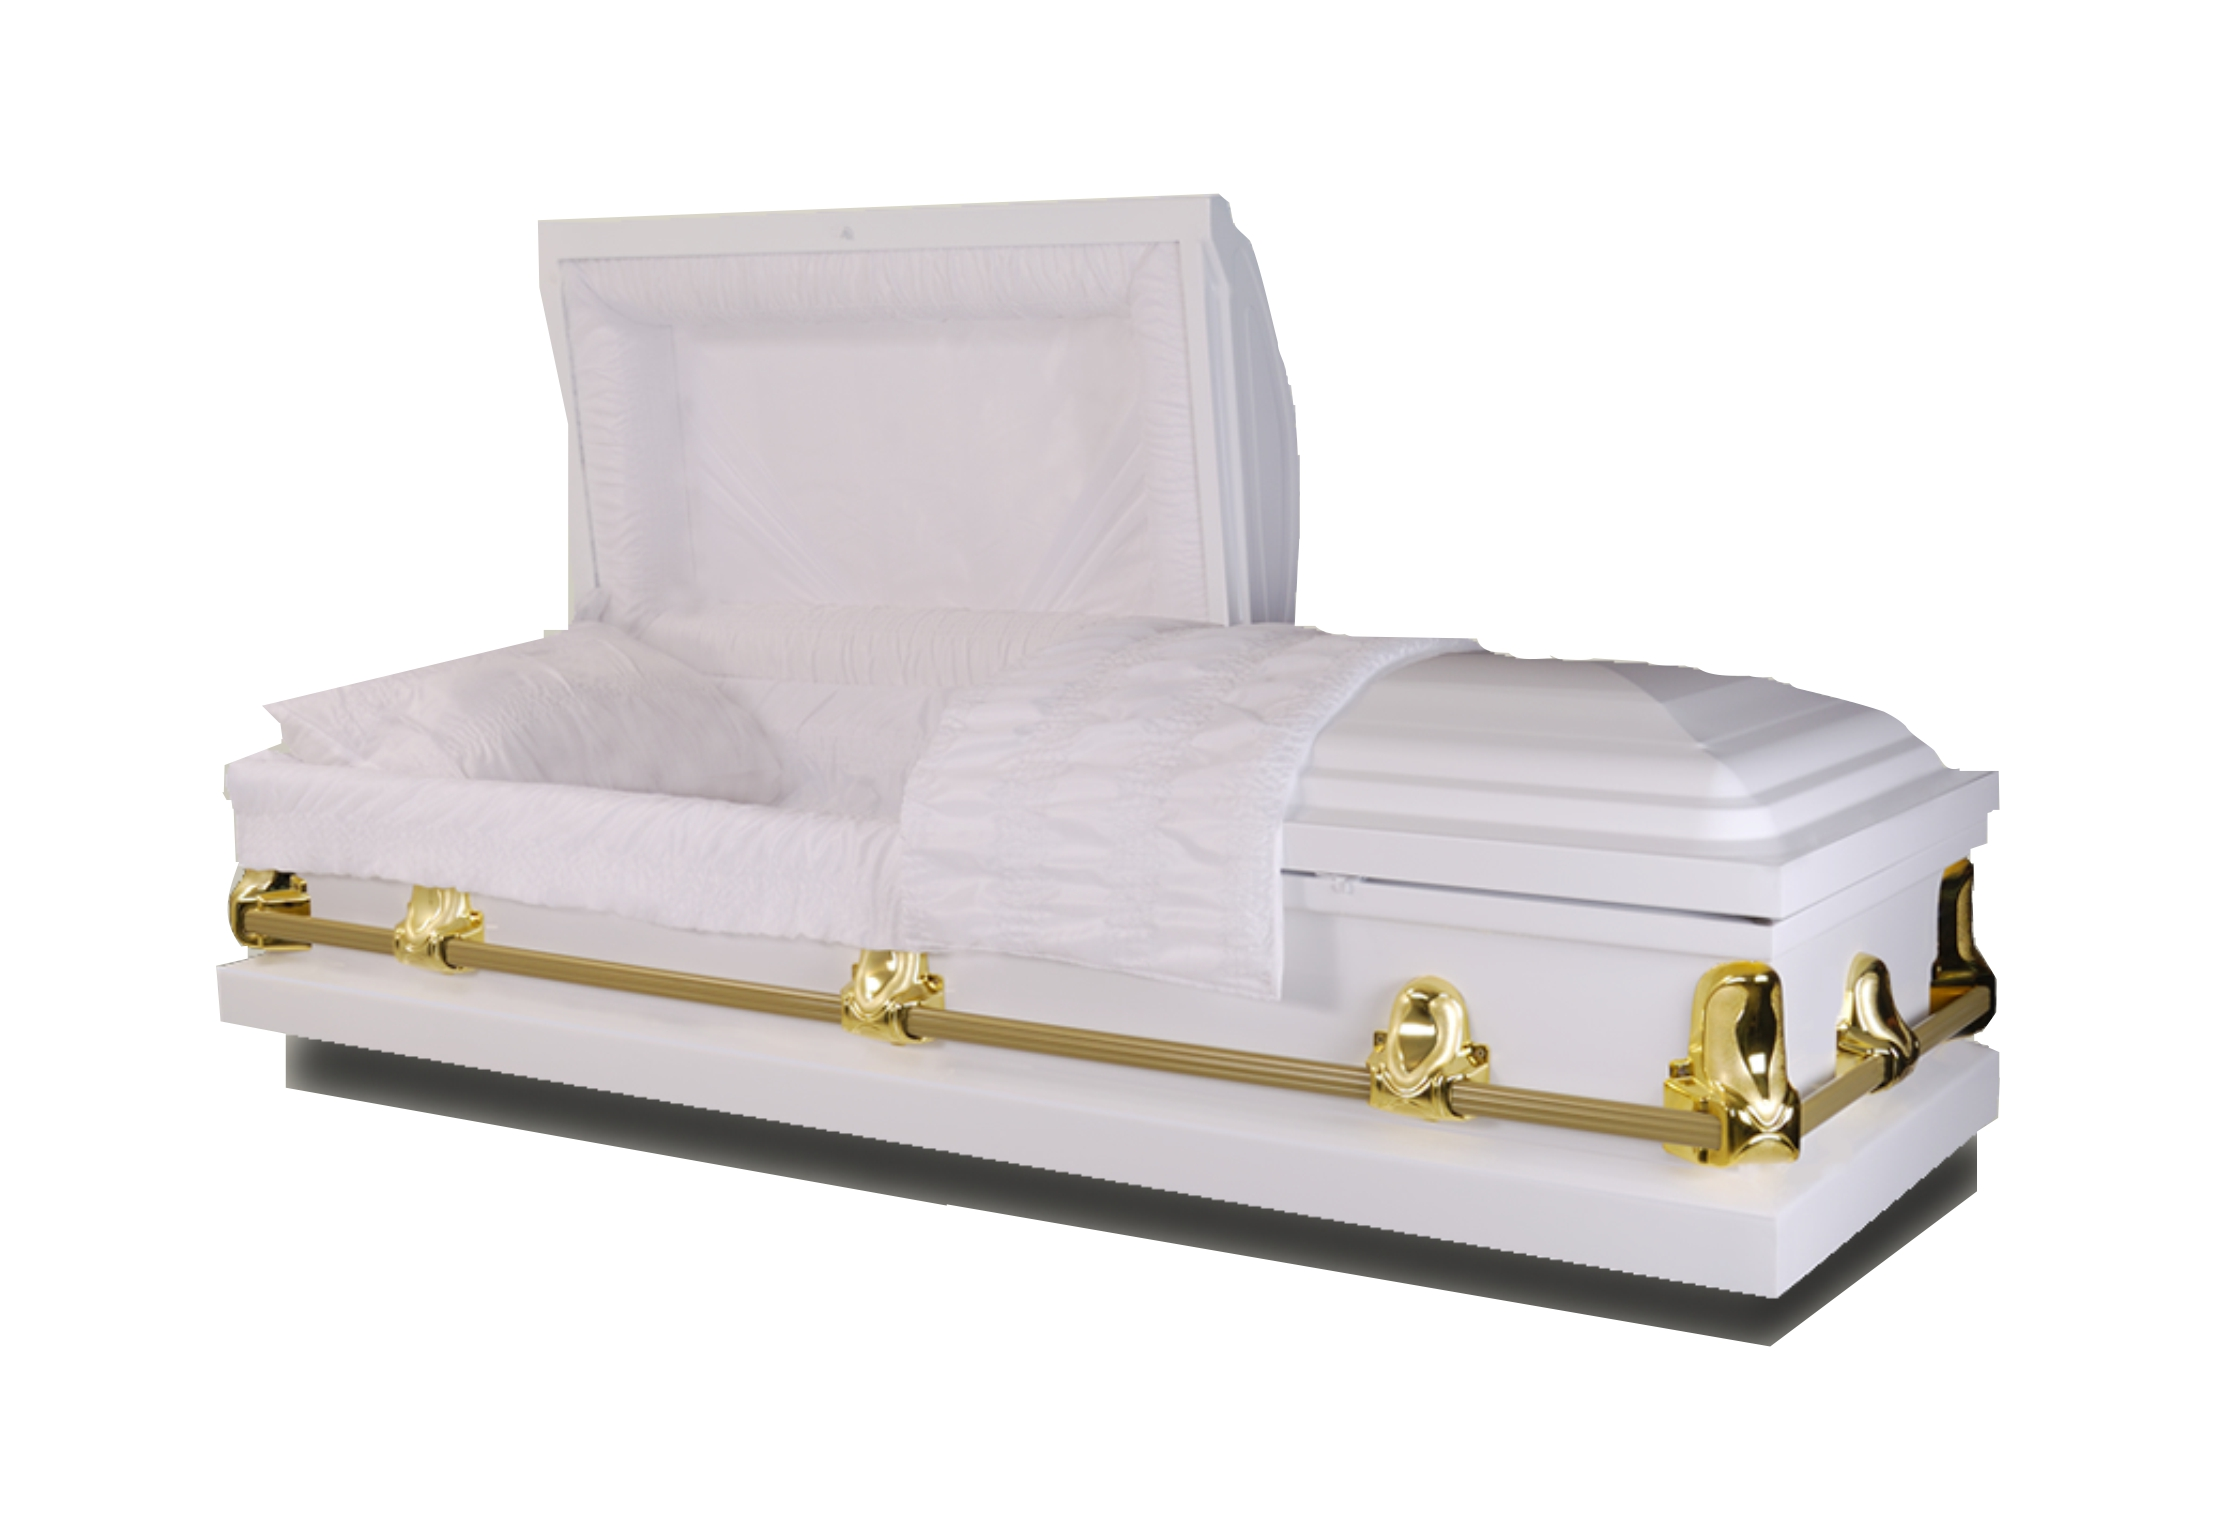 Eternalville Casket Store in El Paso, TX Affordable Caskets for Sale